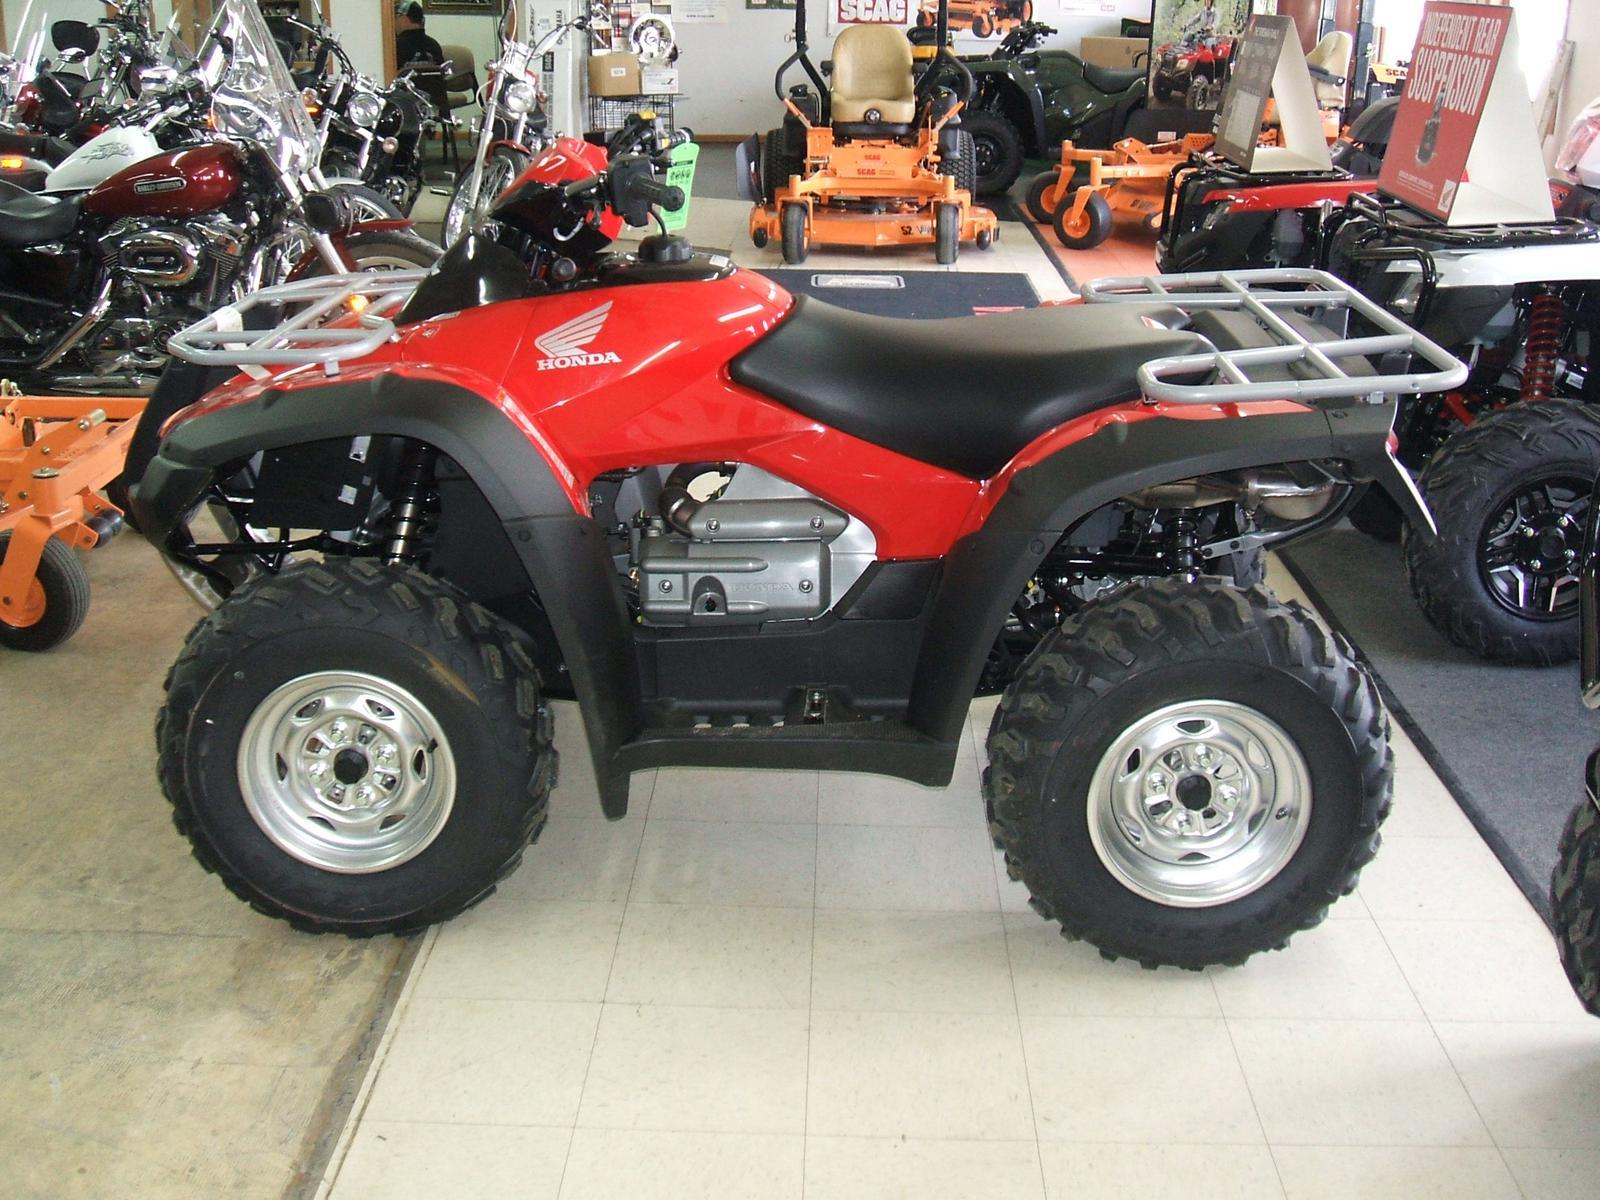 low is atv hours s honda image very loading ebay rincon quad itm with